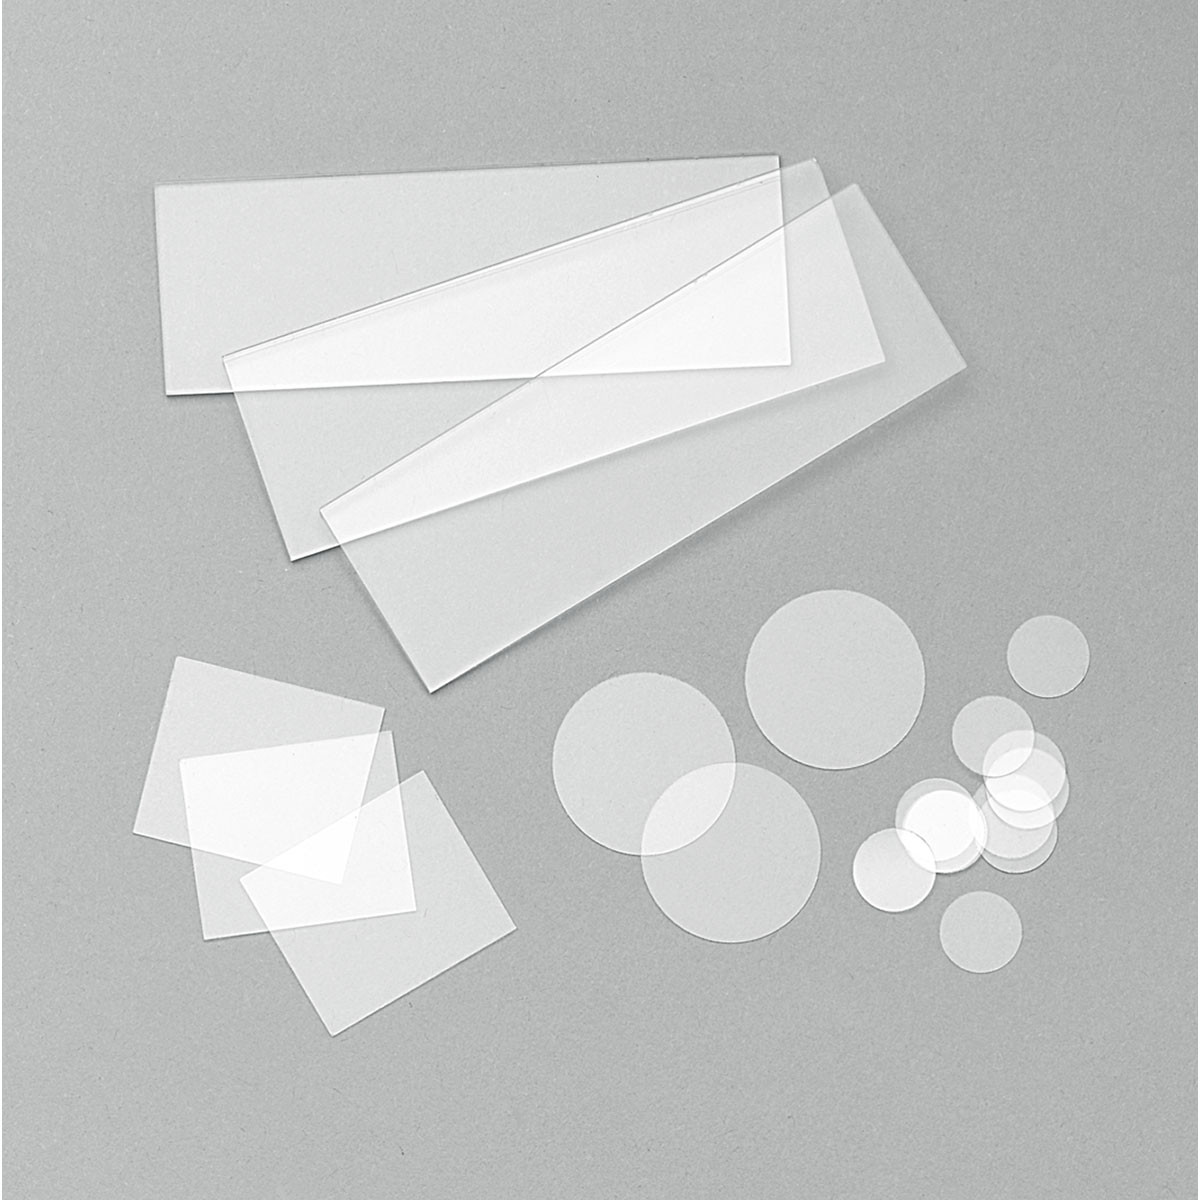 Cover Slips No. 1 22x40mm (100/ pack)